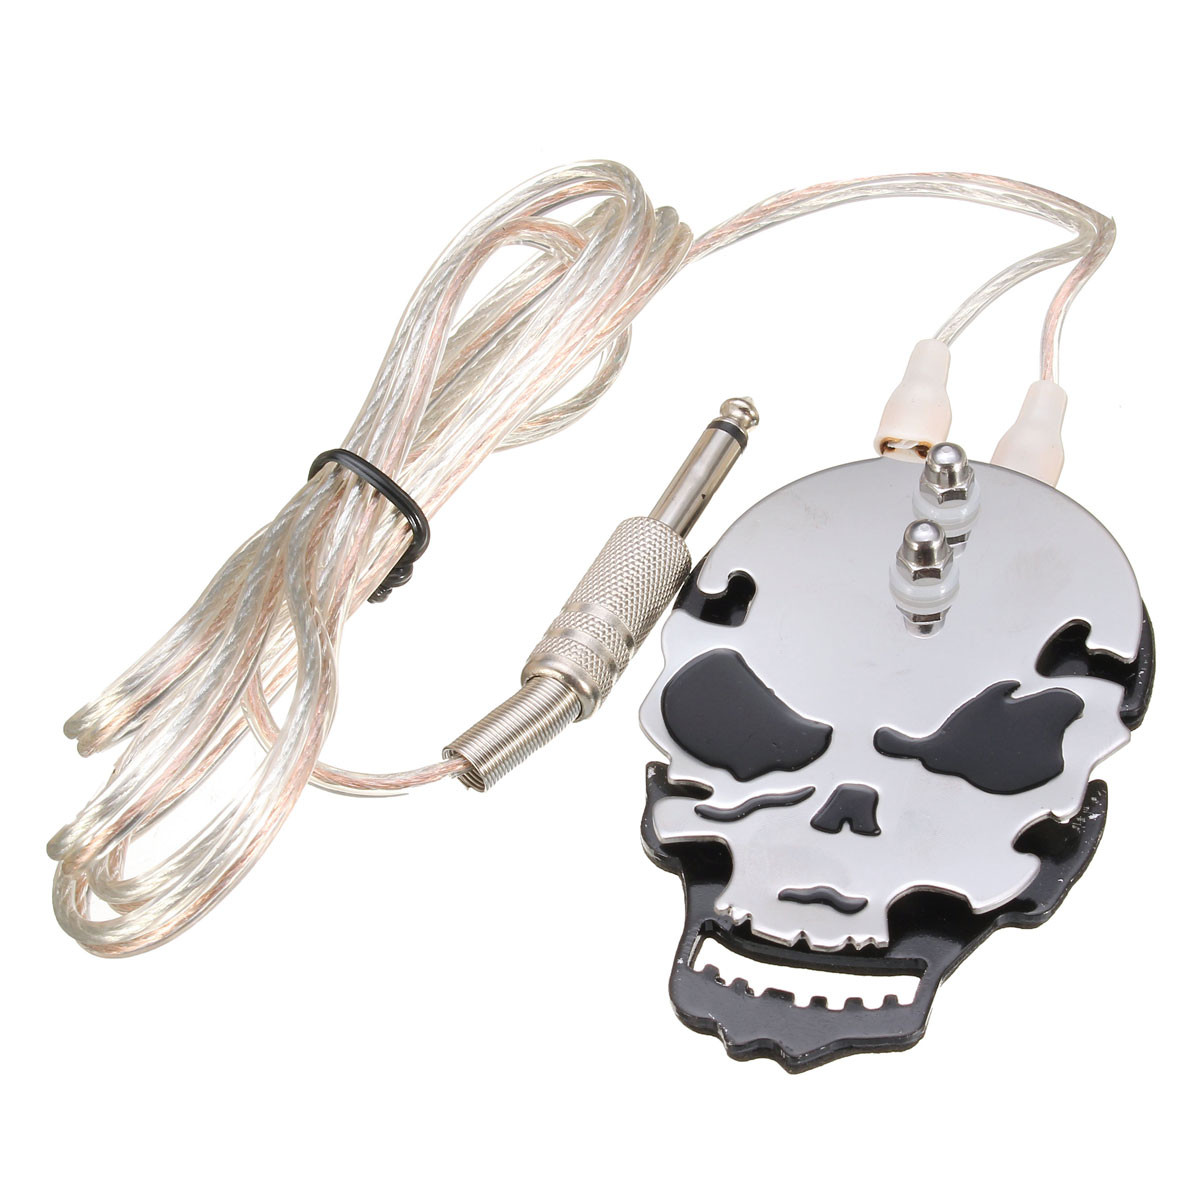 1PC Stainless steel SKULL Tattoo Machine Foot Pedal Swi